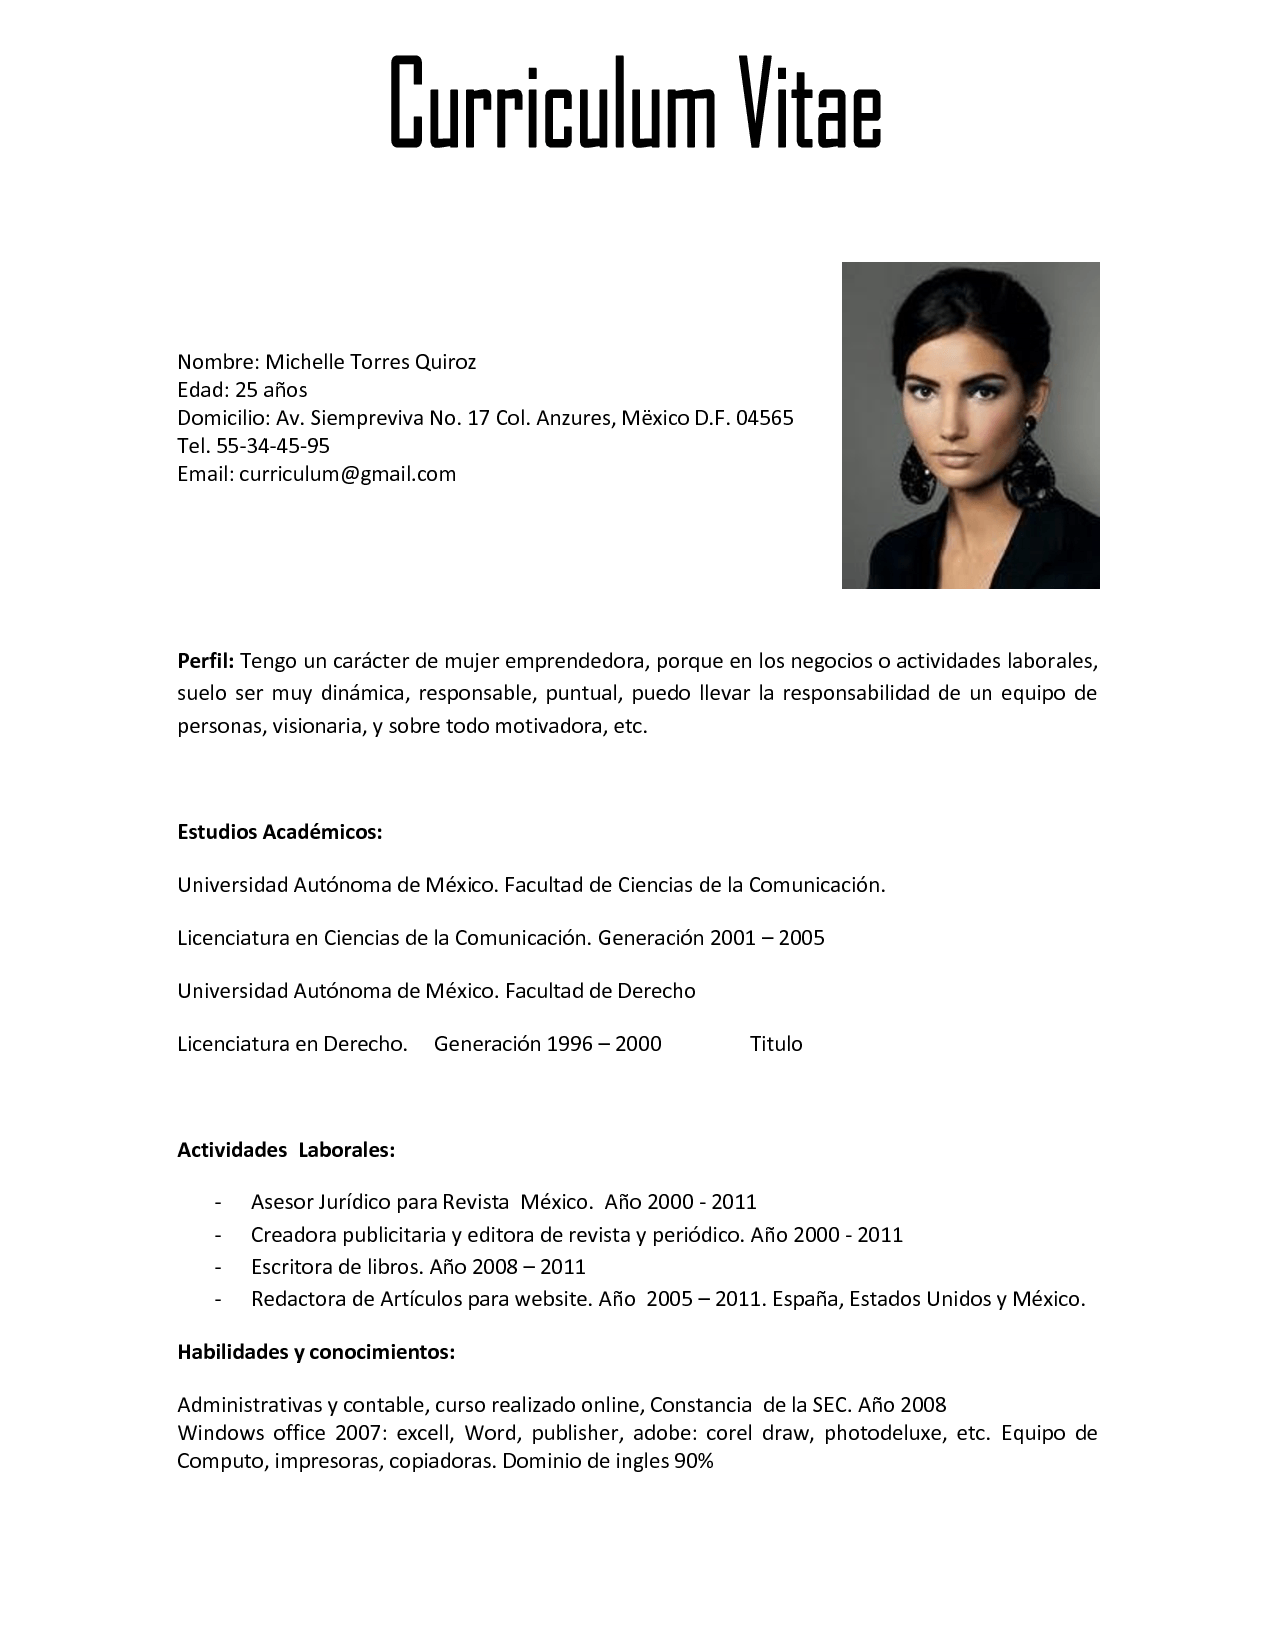 Curriculum Vitae Fotolip Com Rich Image And Wallpaper